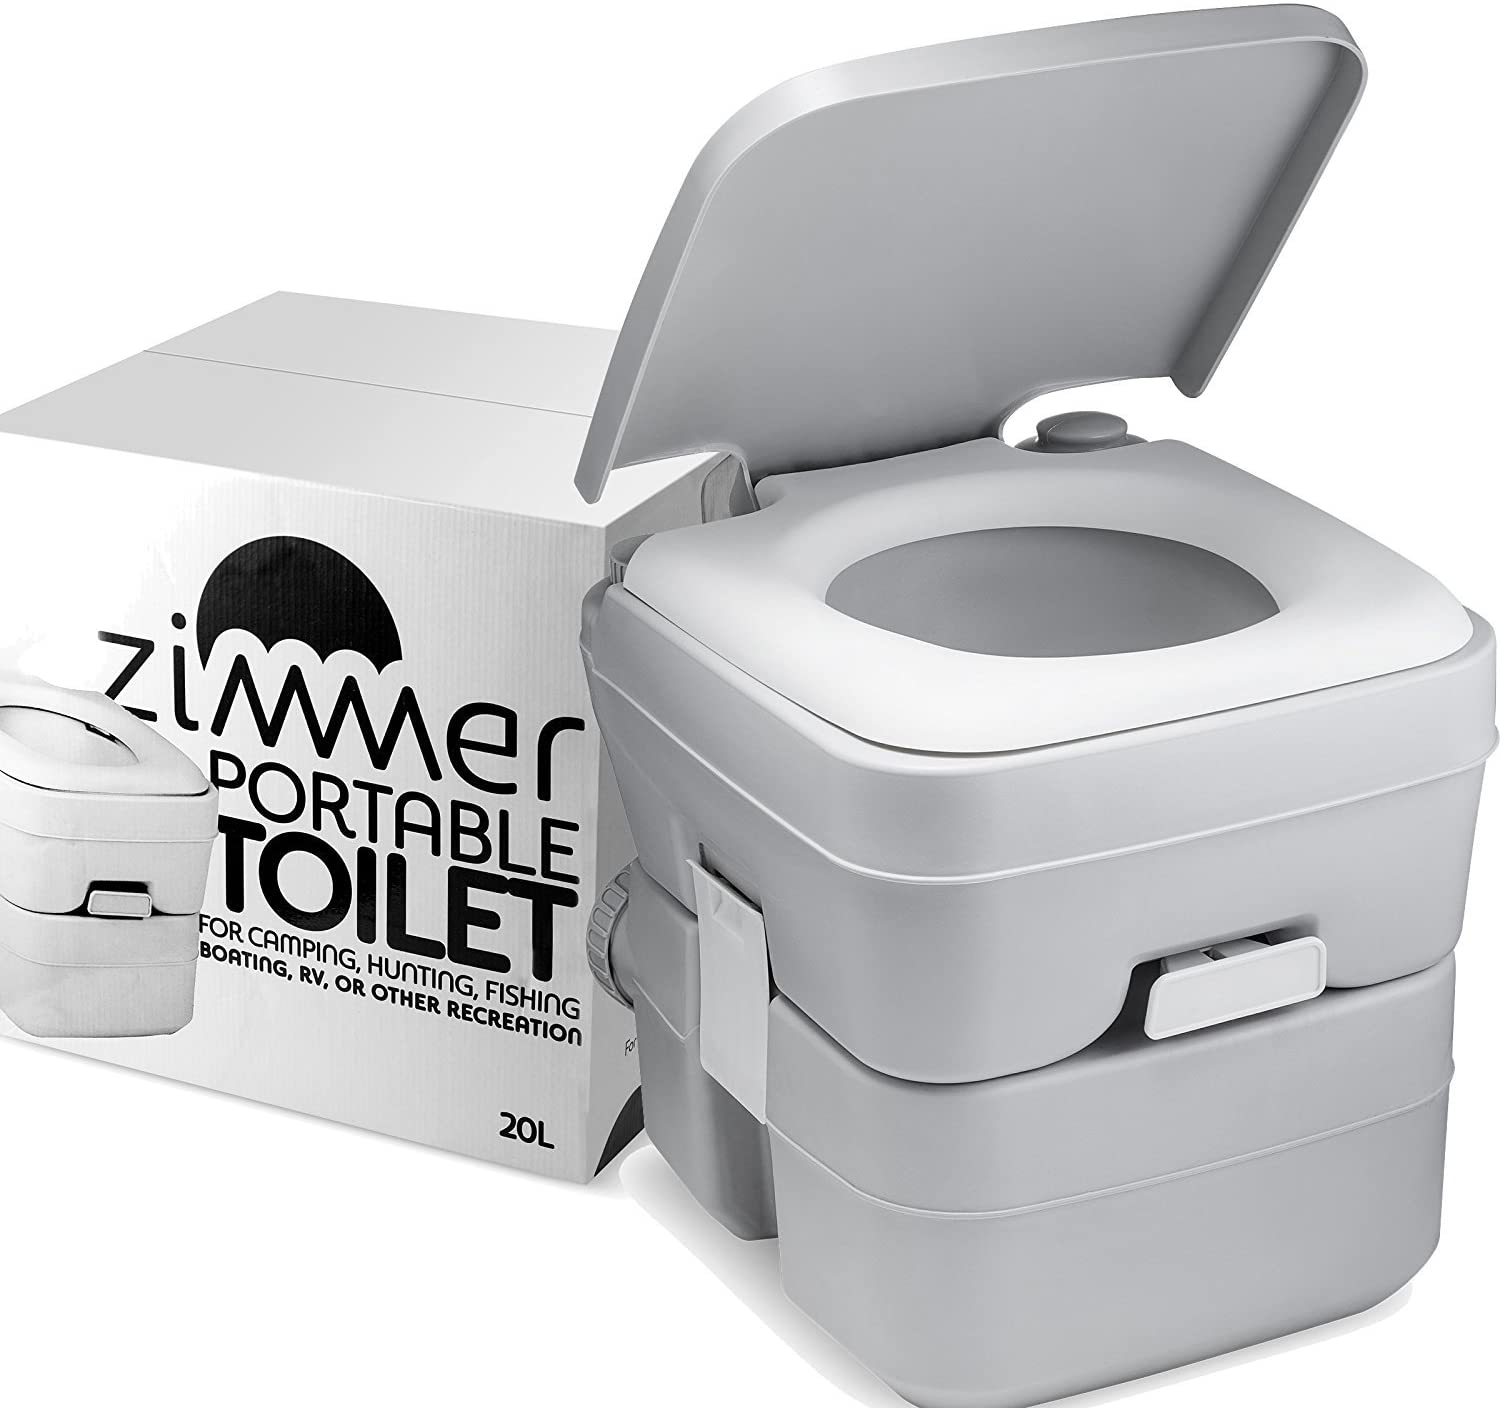 Top 10 Best Portable Camping Toilets 2021 Reviews 5